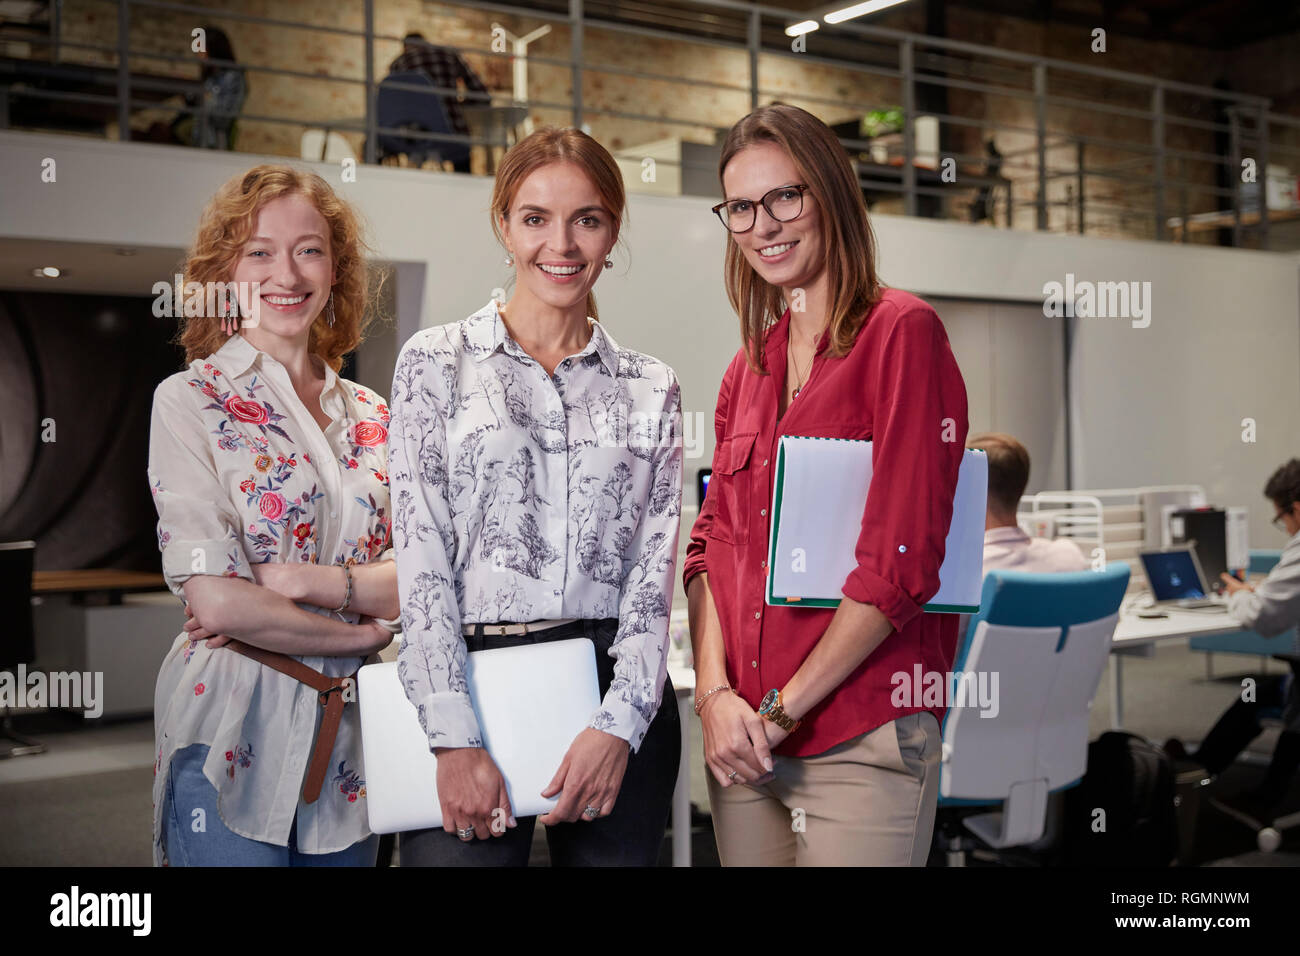 Group portraits of female colleagues in office, holding files - Stock Image